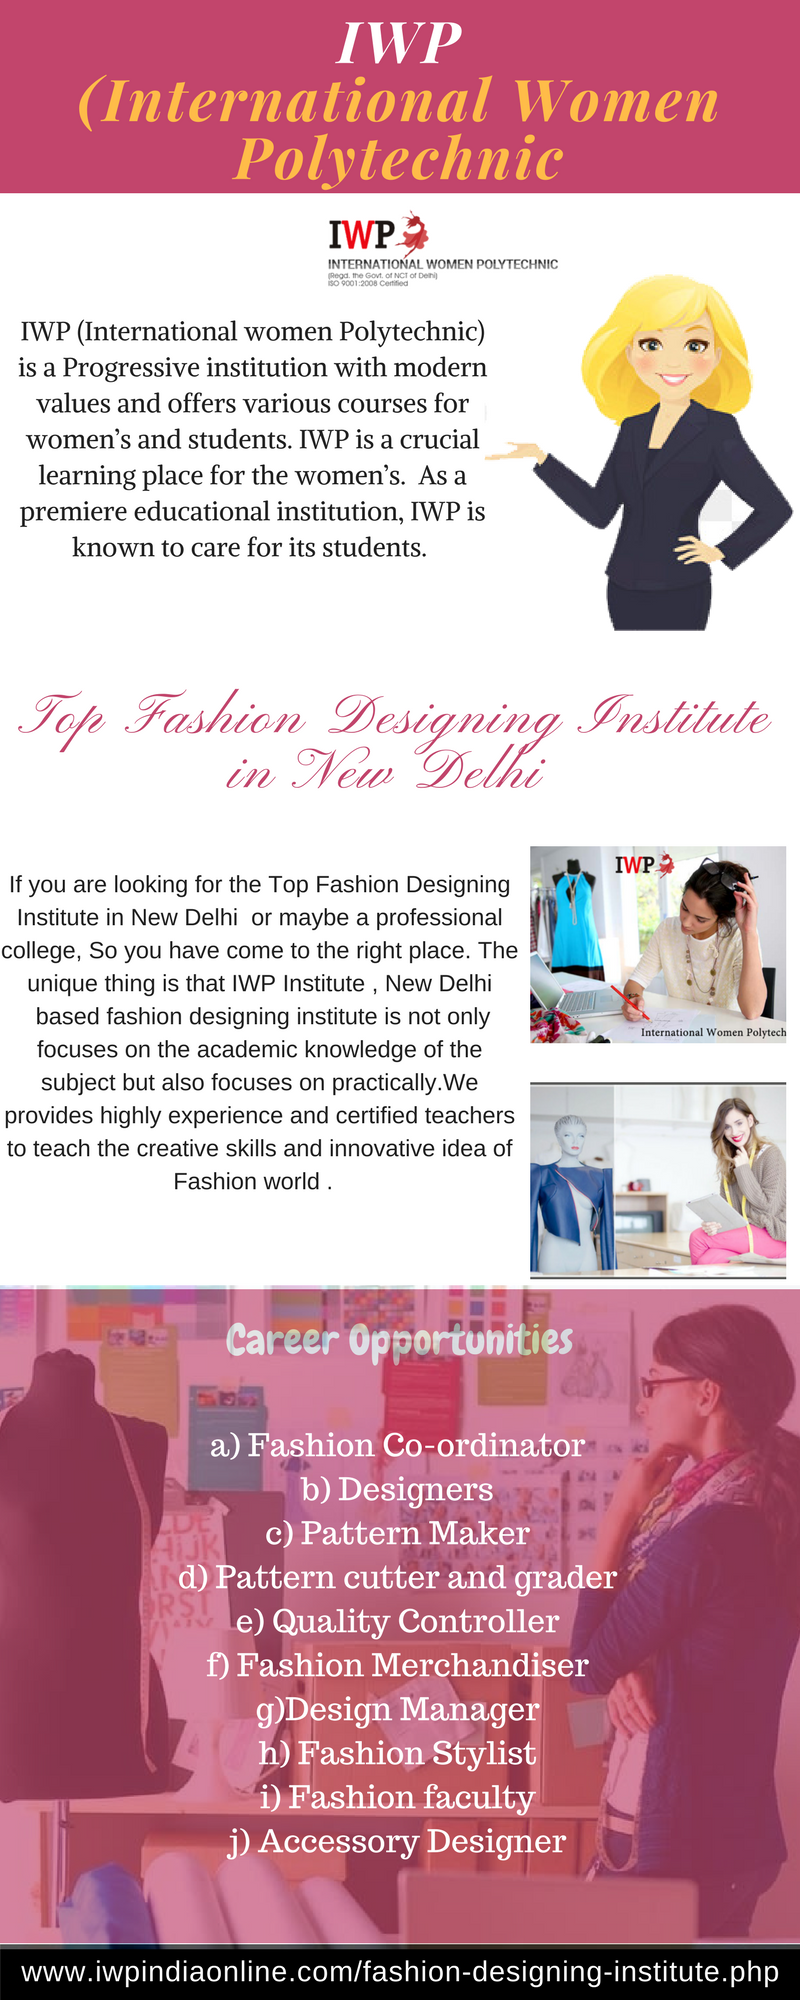 Ame Wilson On Twitter Top Fashion Designing Institute In New Delhi Https T Co Vhplzkxela Iwpinstitute Fashiondesigninginstitute